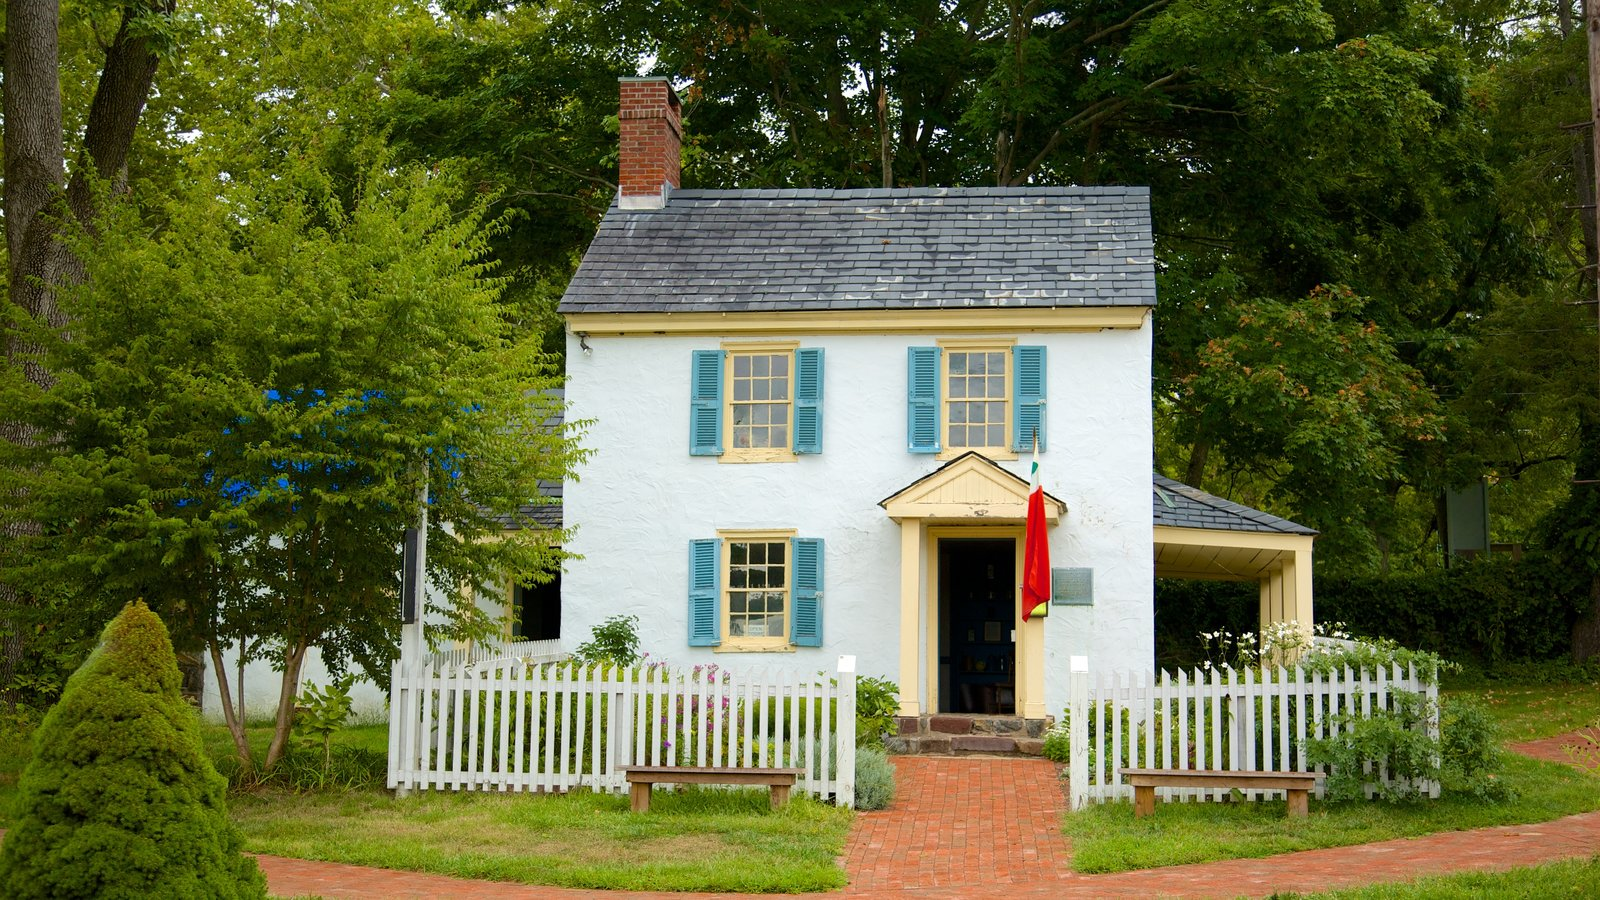 washington crossing dating site Mcconkey ferry inn, one of the still existing buildings from 1776 photograph courtesy of michelle matz, washington crossing historic park.